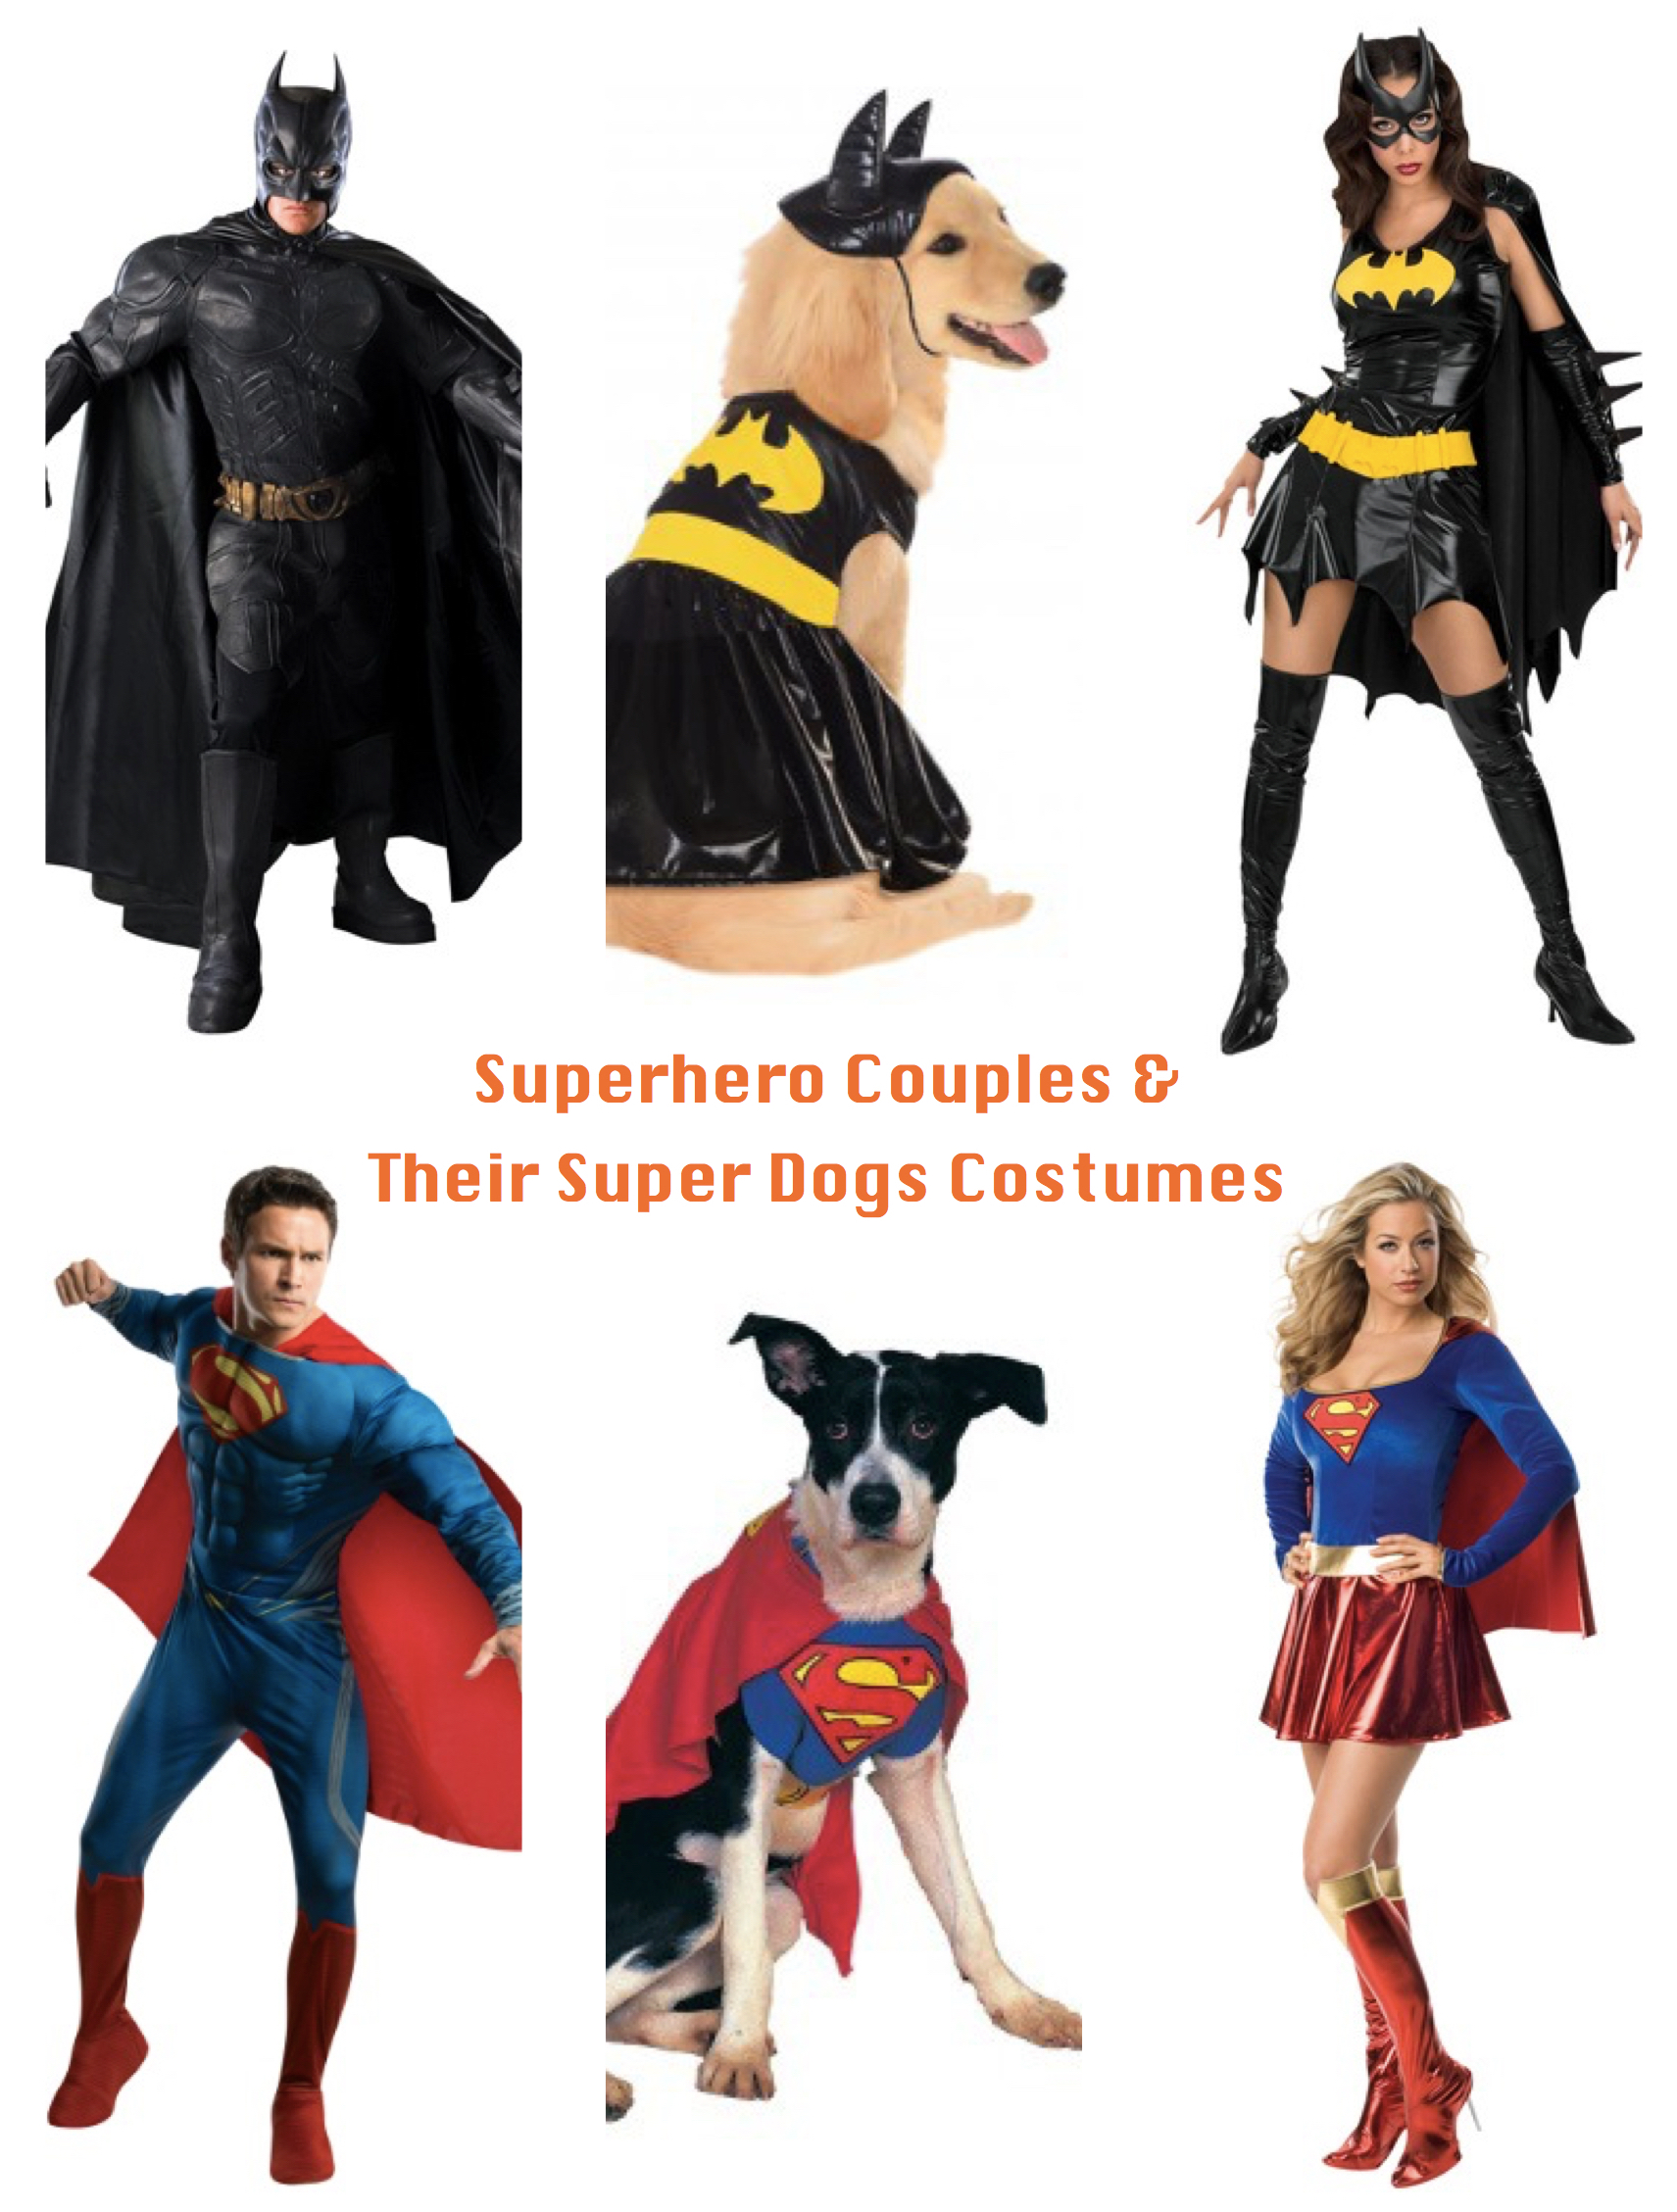 Superhero Couples & Their Super Dogs Halloween Costumes